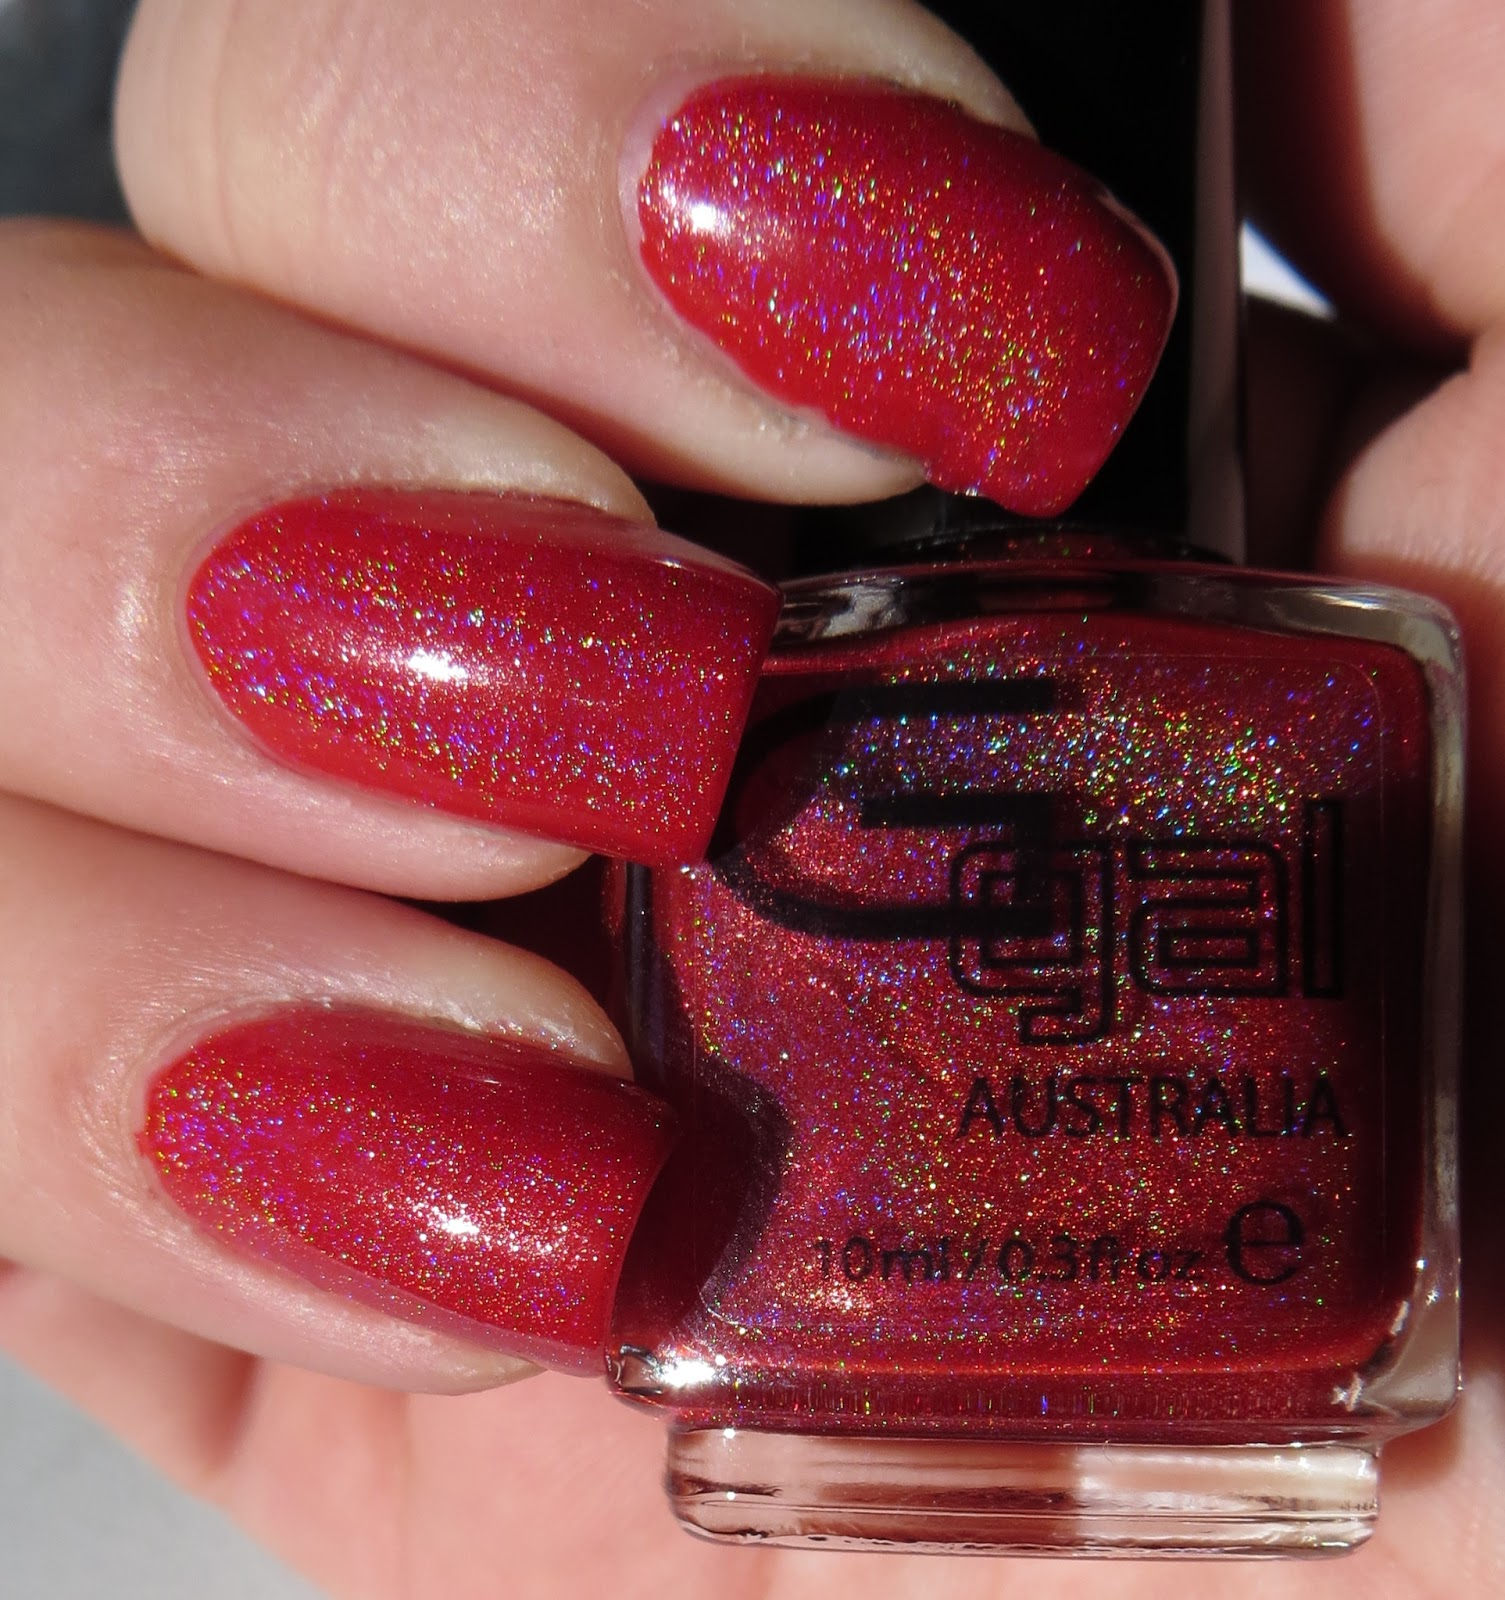 Spectrum Holographic Nail Polish: Bright Red Holographic